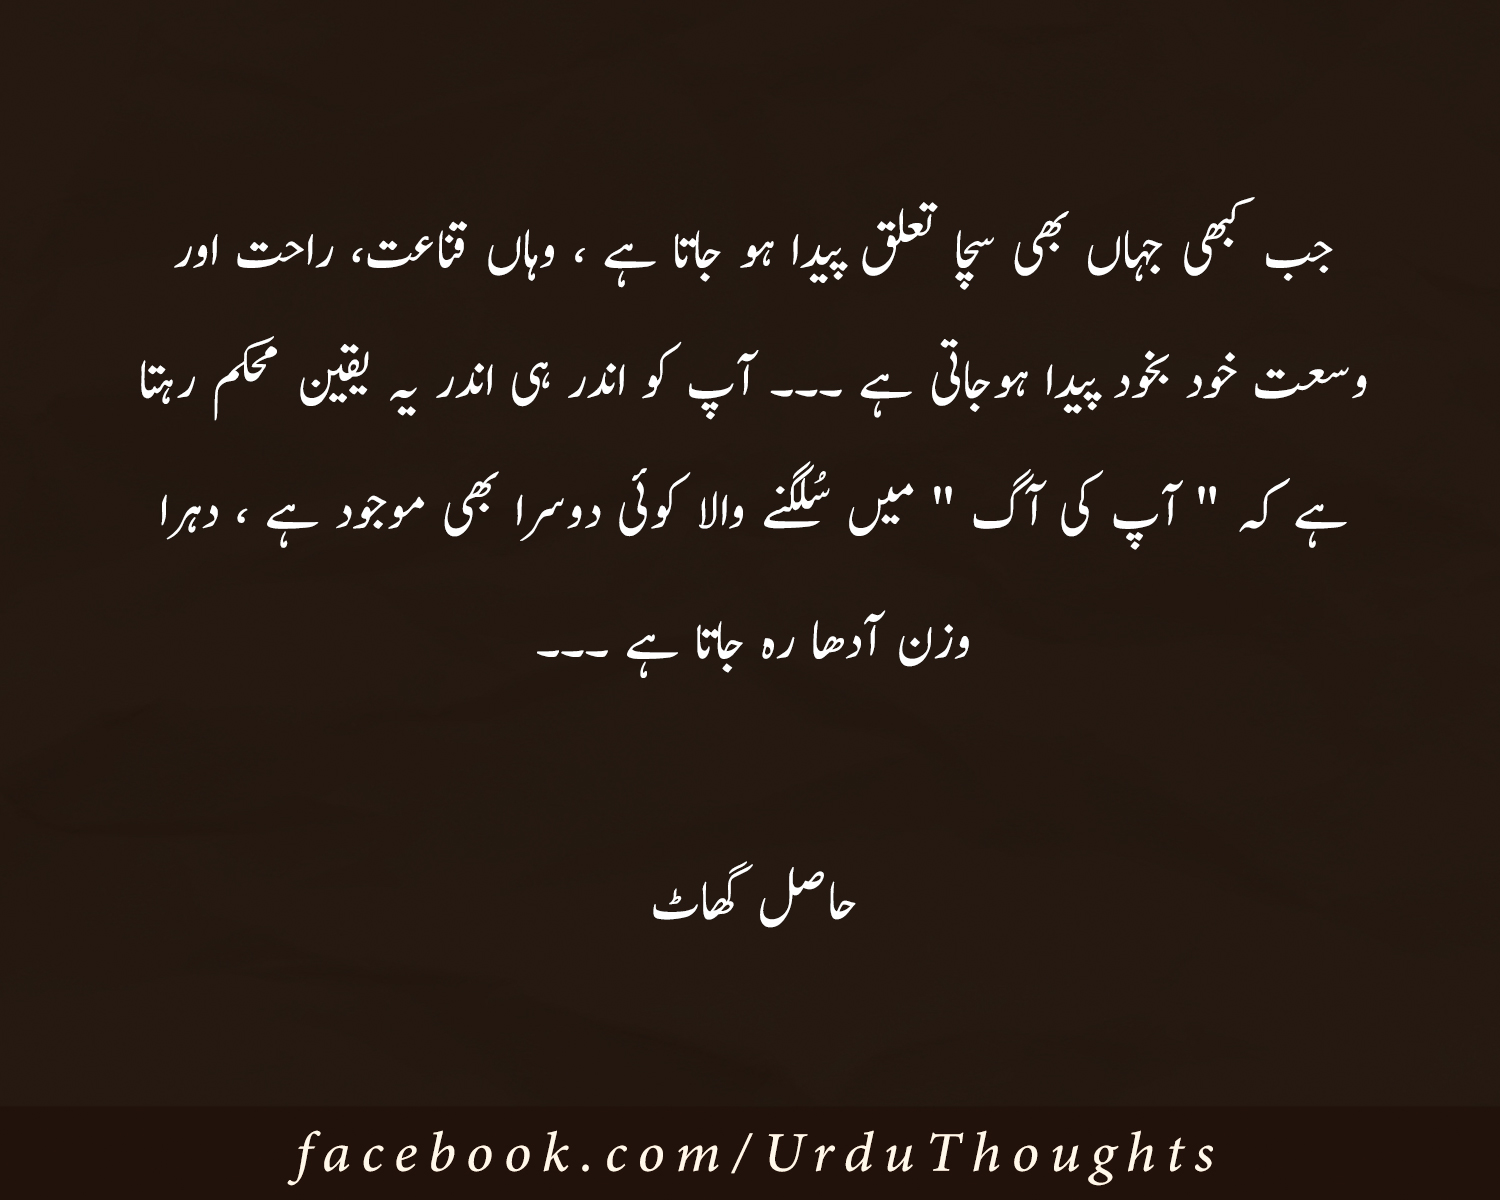 Images for urdu quotes famous urdu quotes images urdu for Bano qudsia poetry